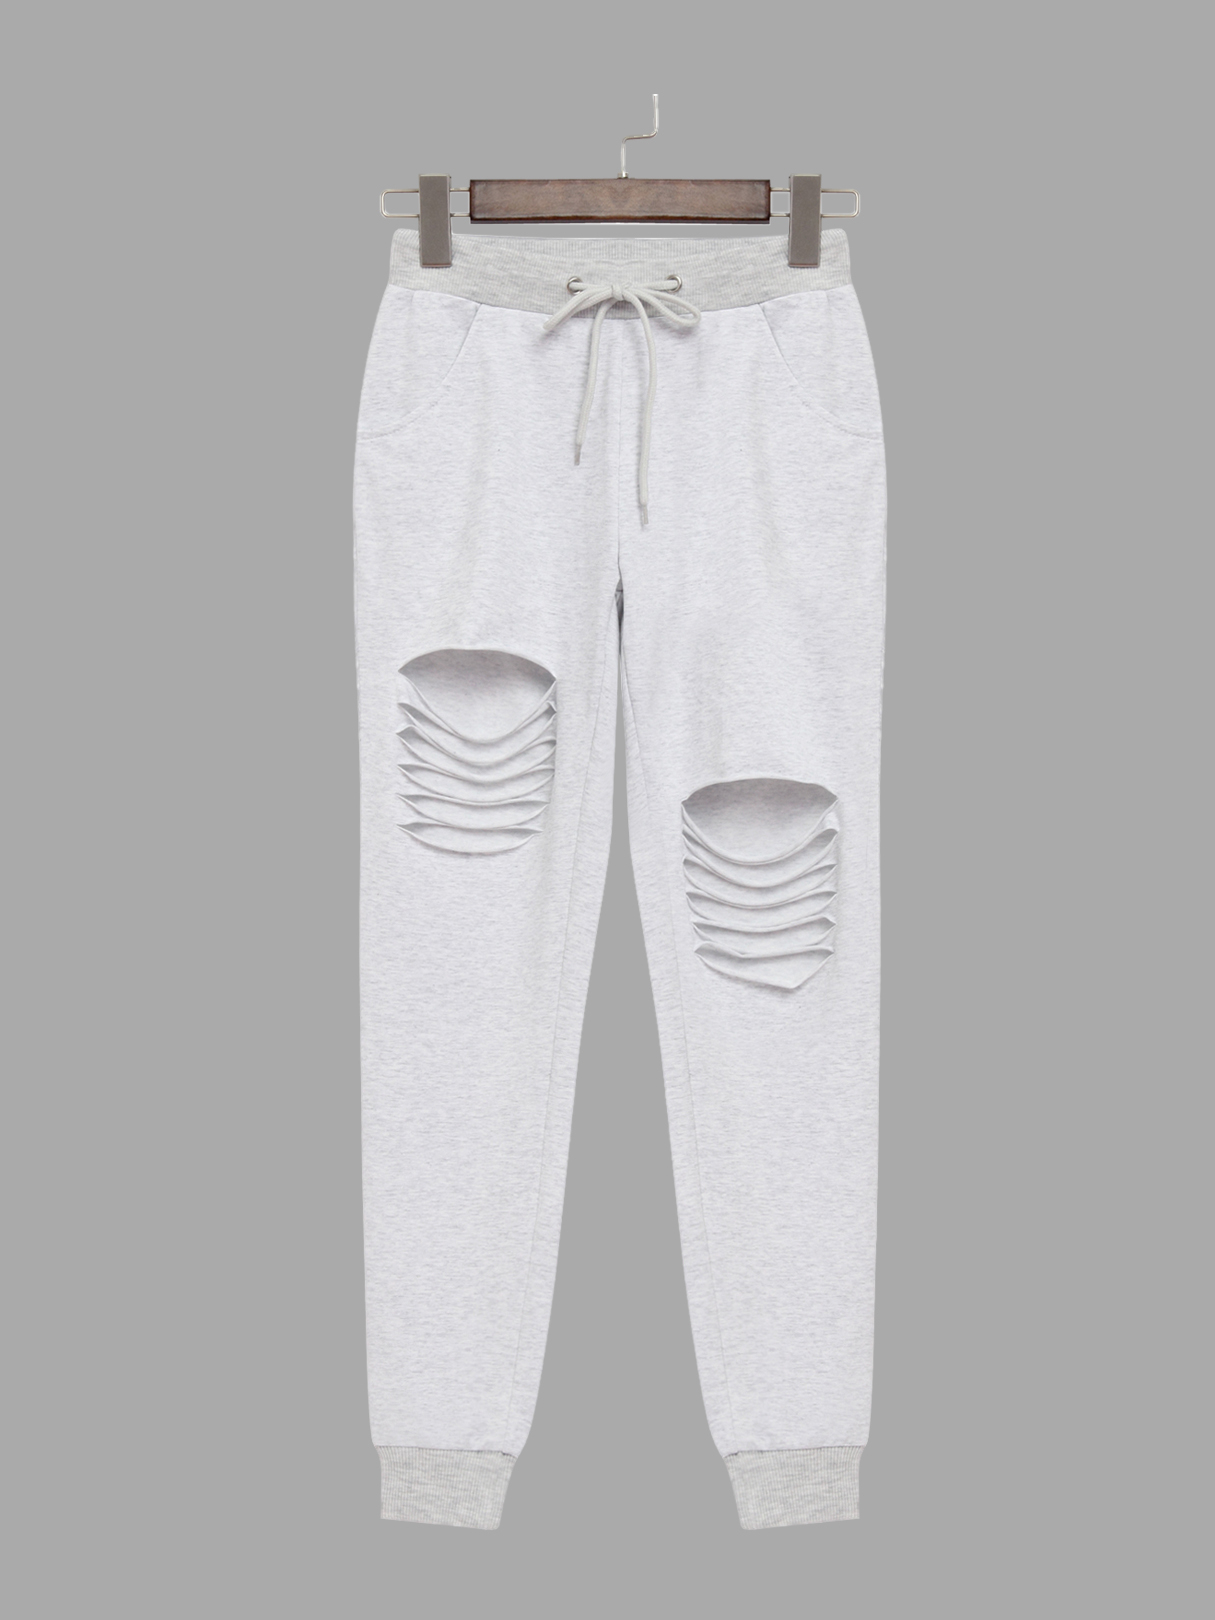 Grey Two Side Pockets Drawstring Waist Sport Trousers blue fashion two side pockets sport trousers